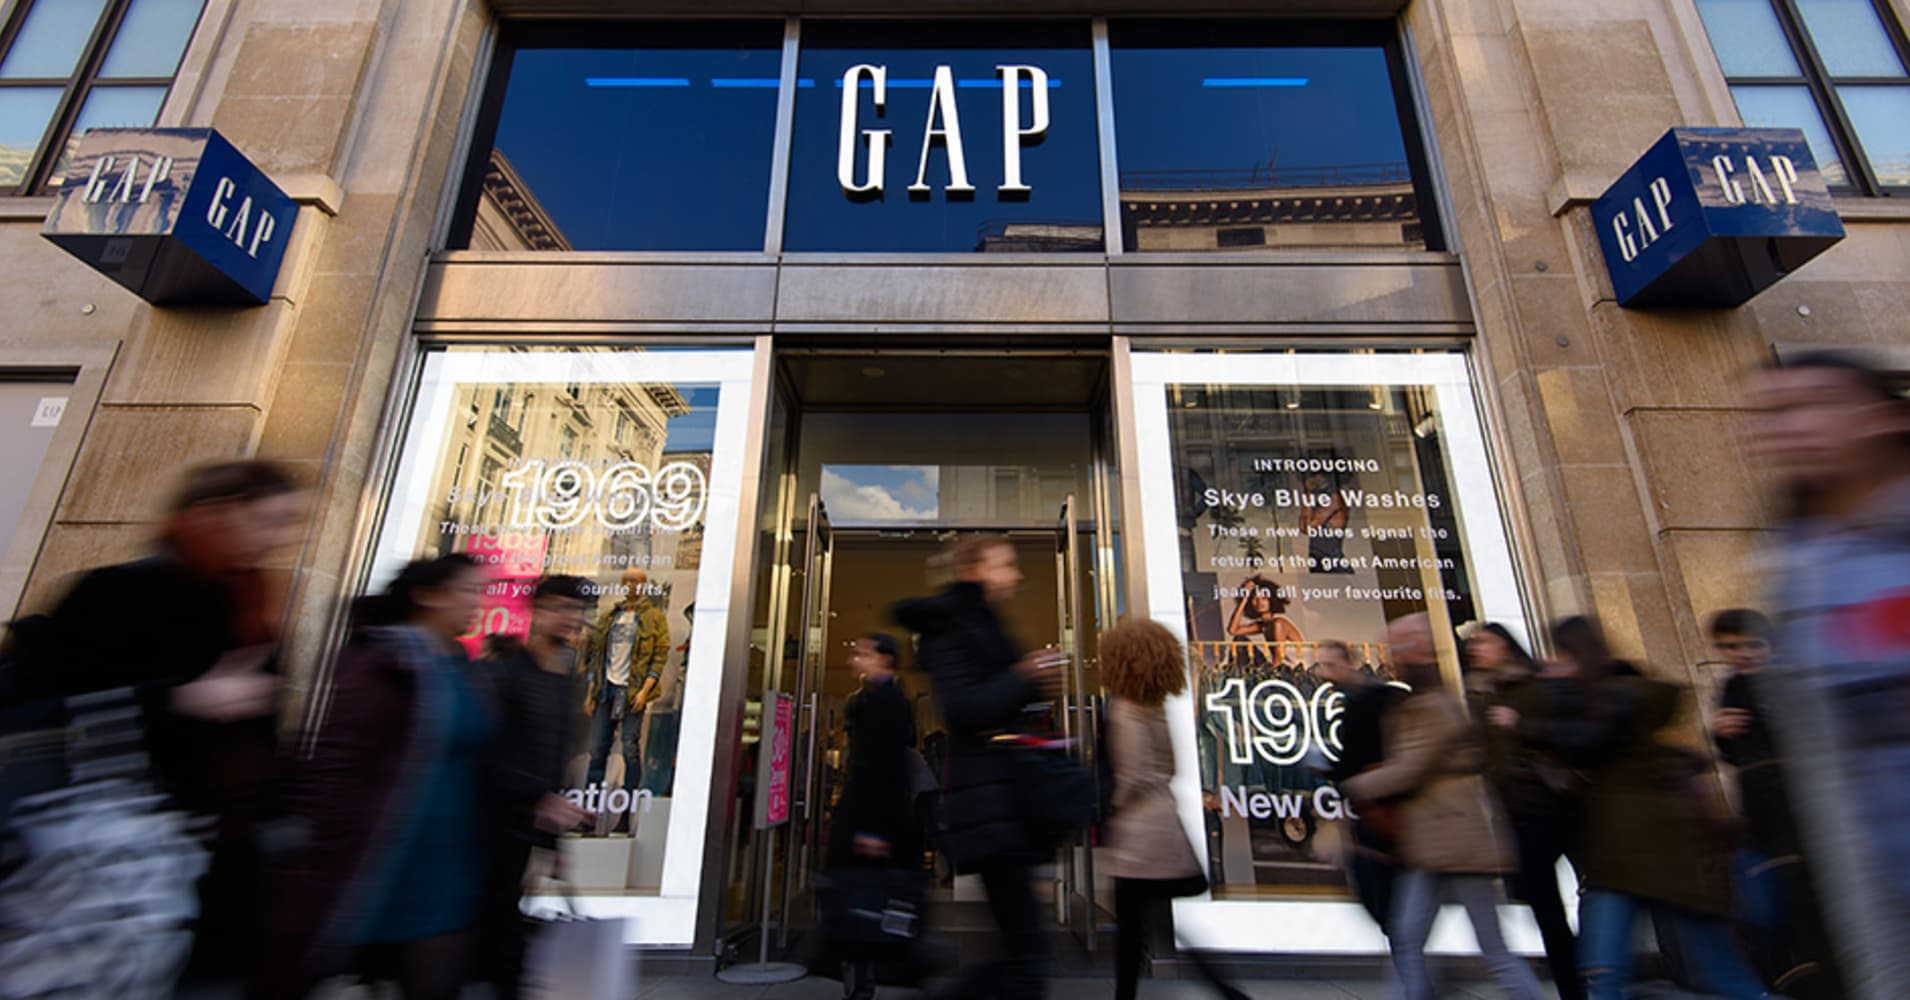 THE GAP CLOSING STORES LIST